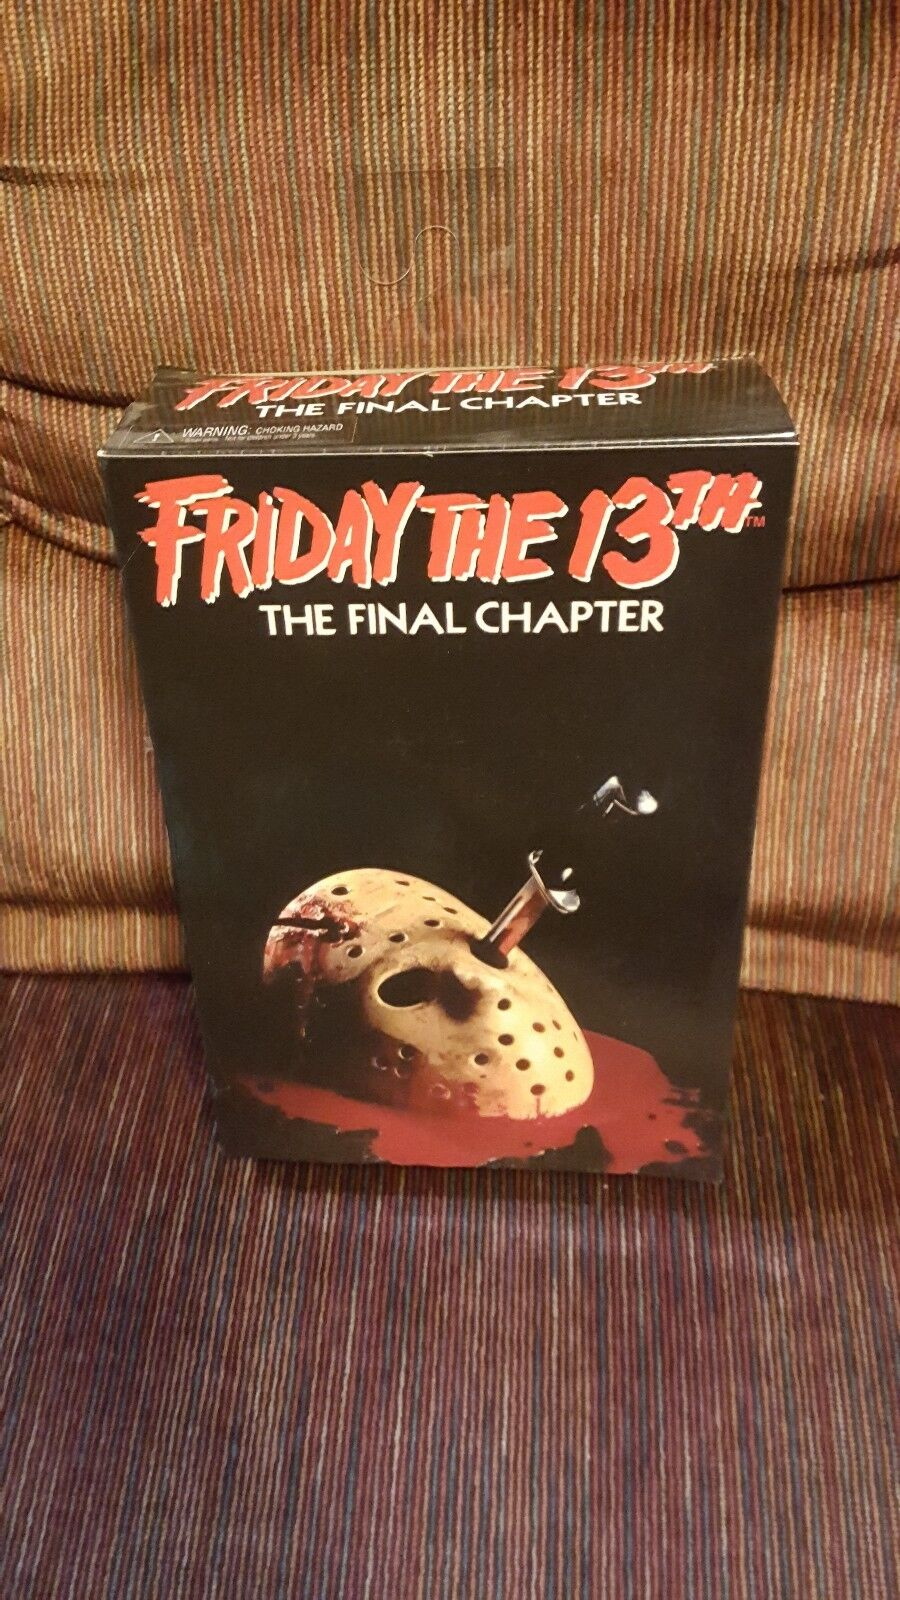 NECA Friday Friday Friday the 13th The Final Chapter Ultimate Jason Voorhees Action Figure 0307c0